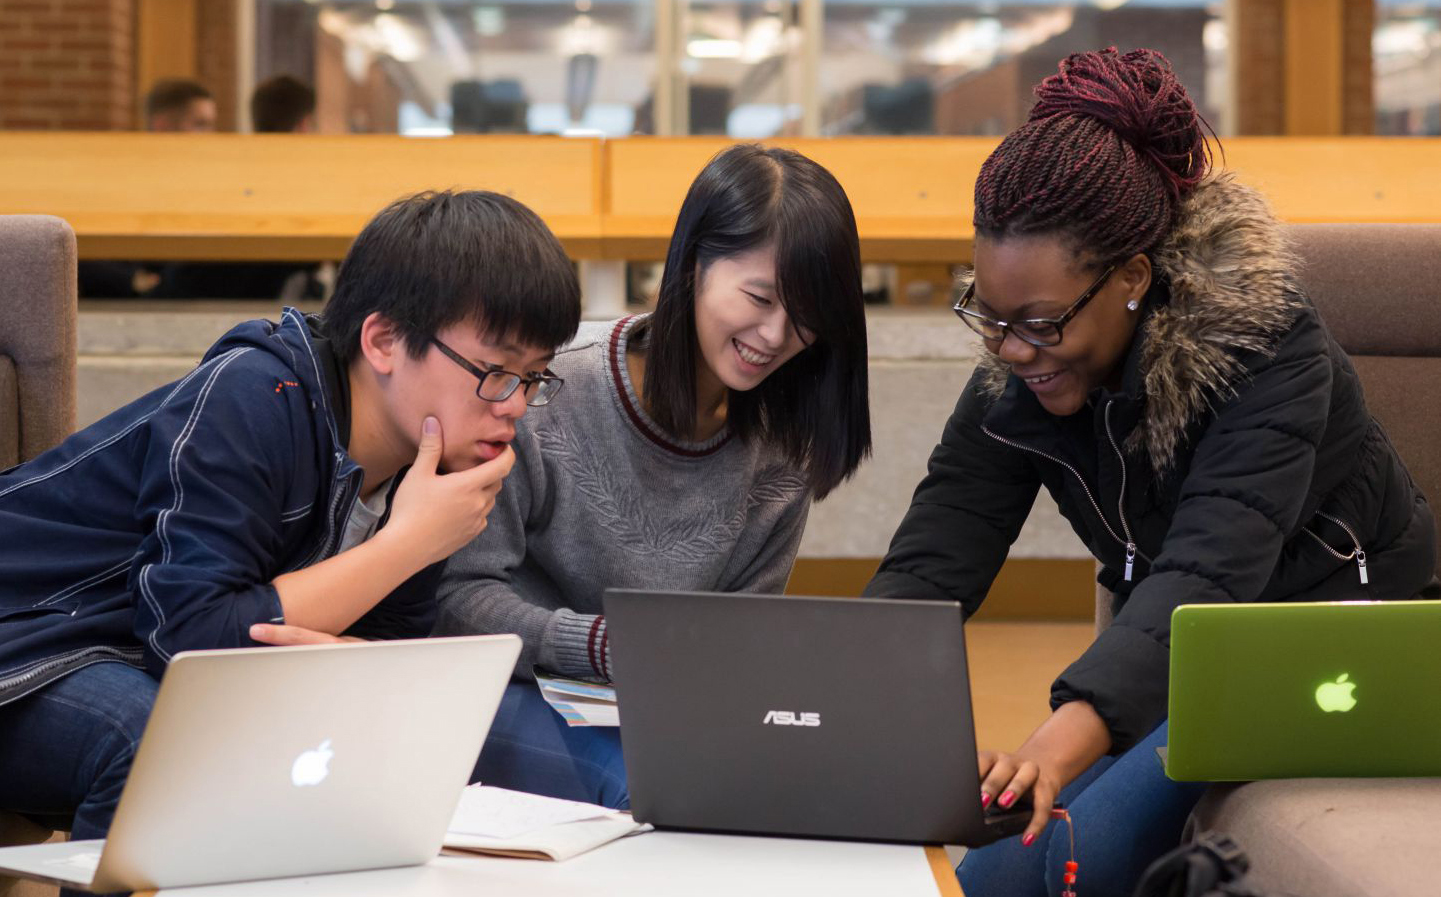 Three PhD students work together on their laptops for a project at the University of Sussex